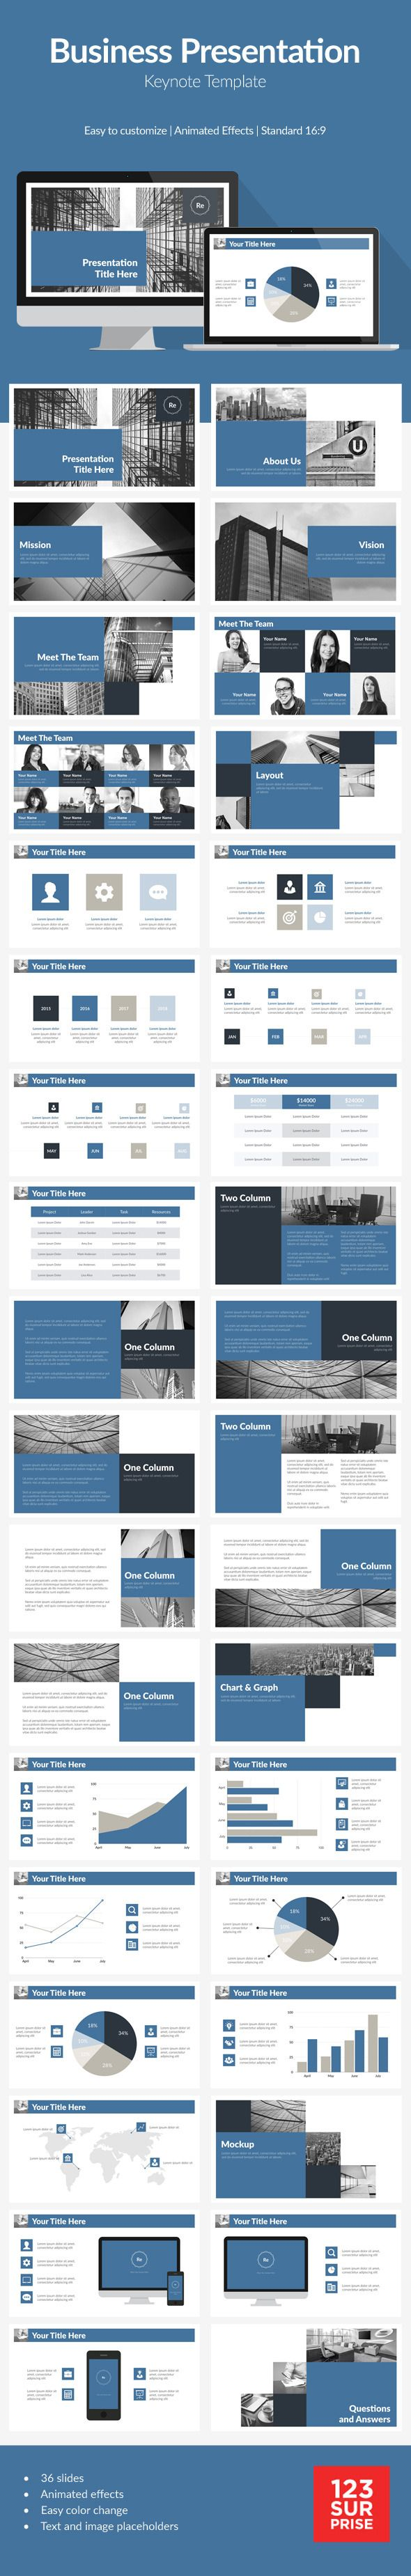 Corporate Business Presentation Template